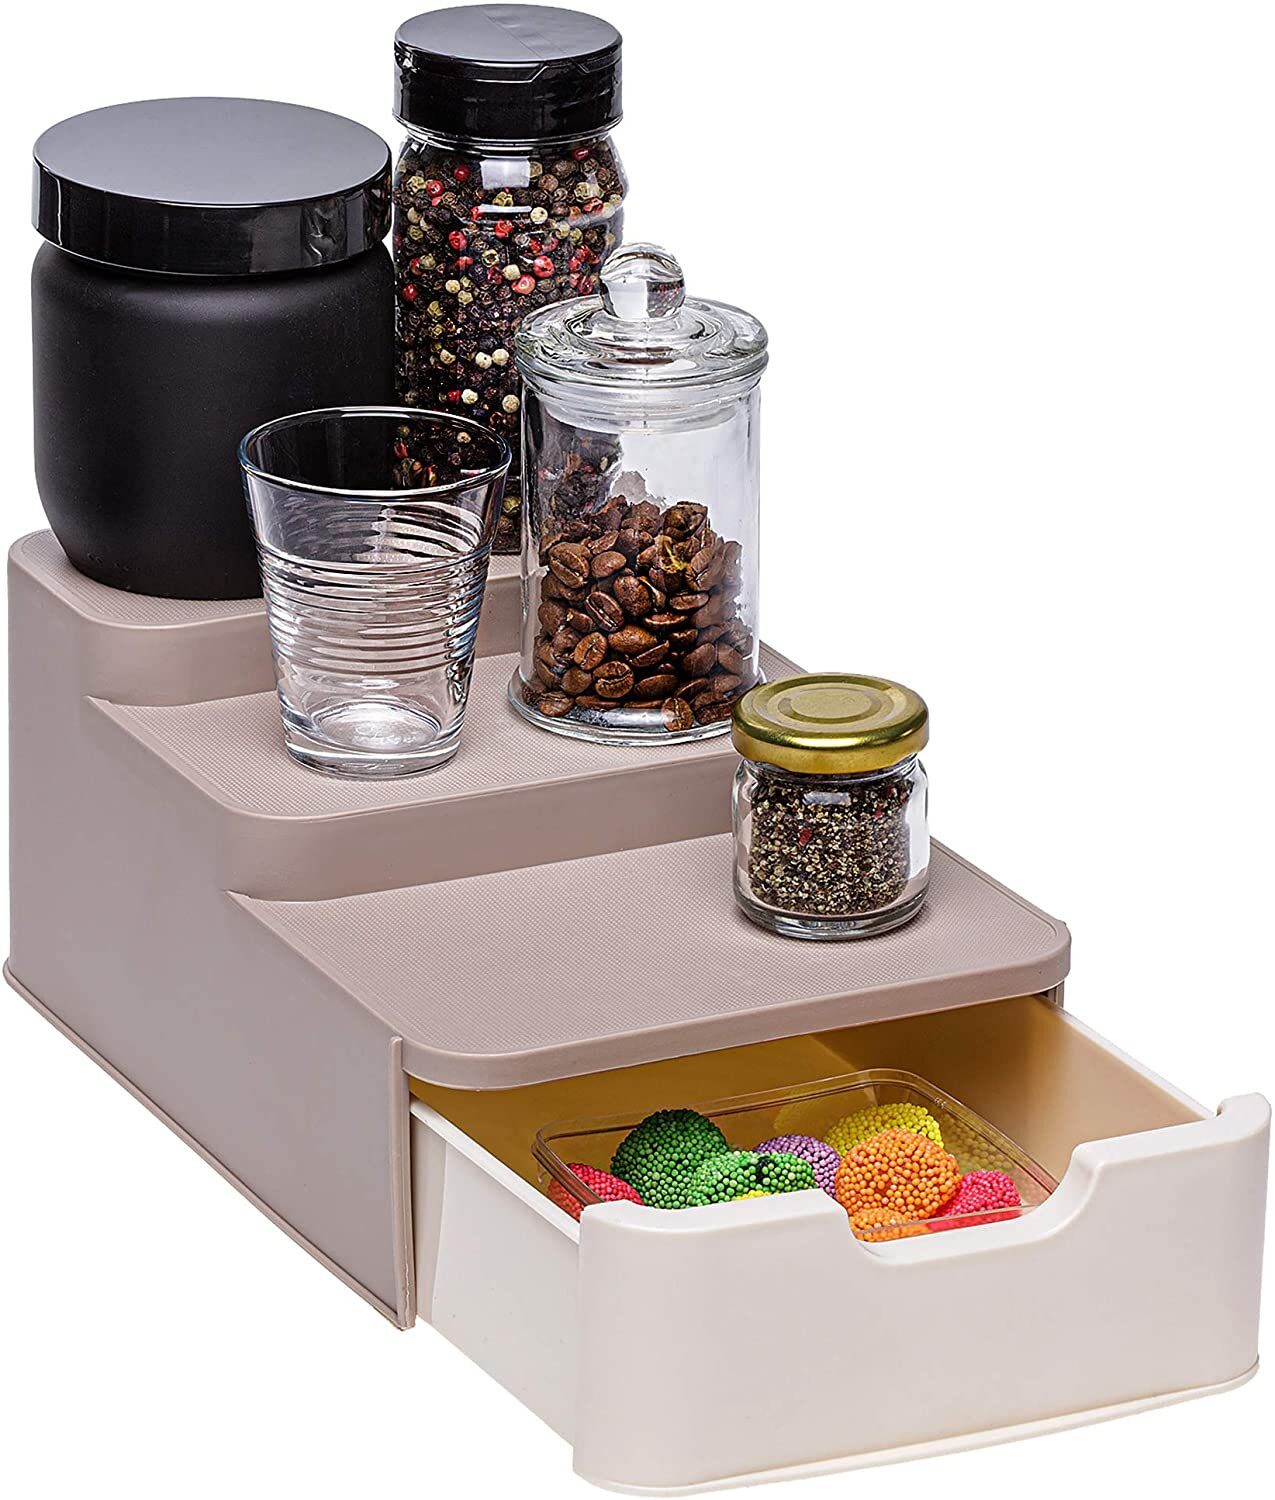 FREE STANDING STAINLESS STEEL KITCHEN SPICE RACK STAND 20 SQUARE STORAGE JARS